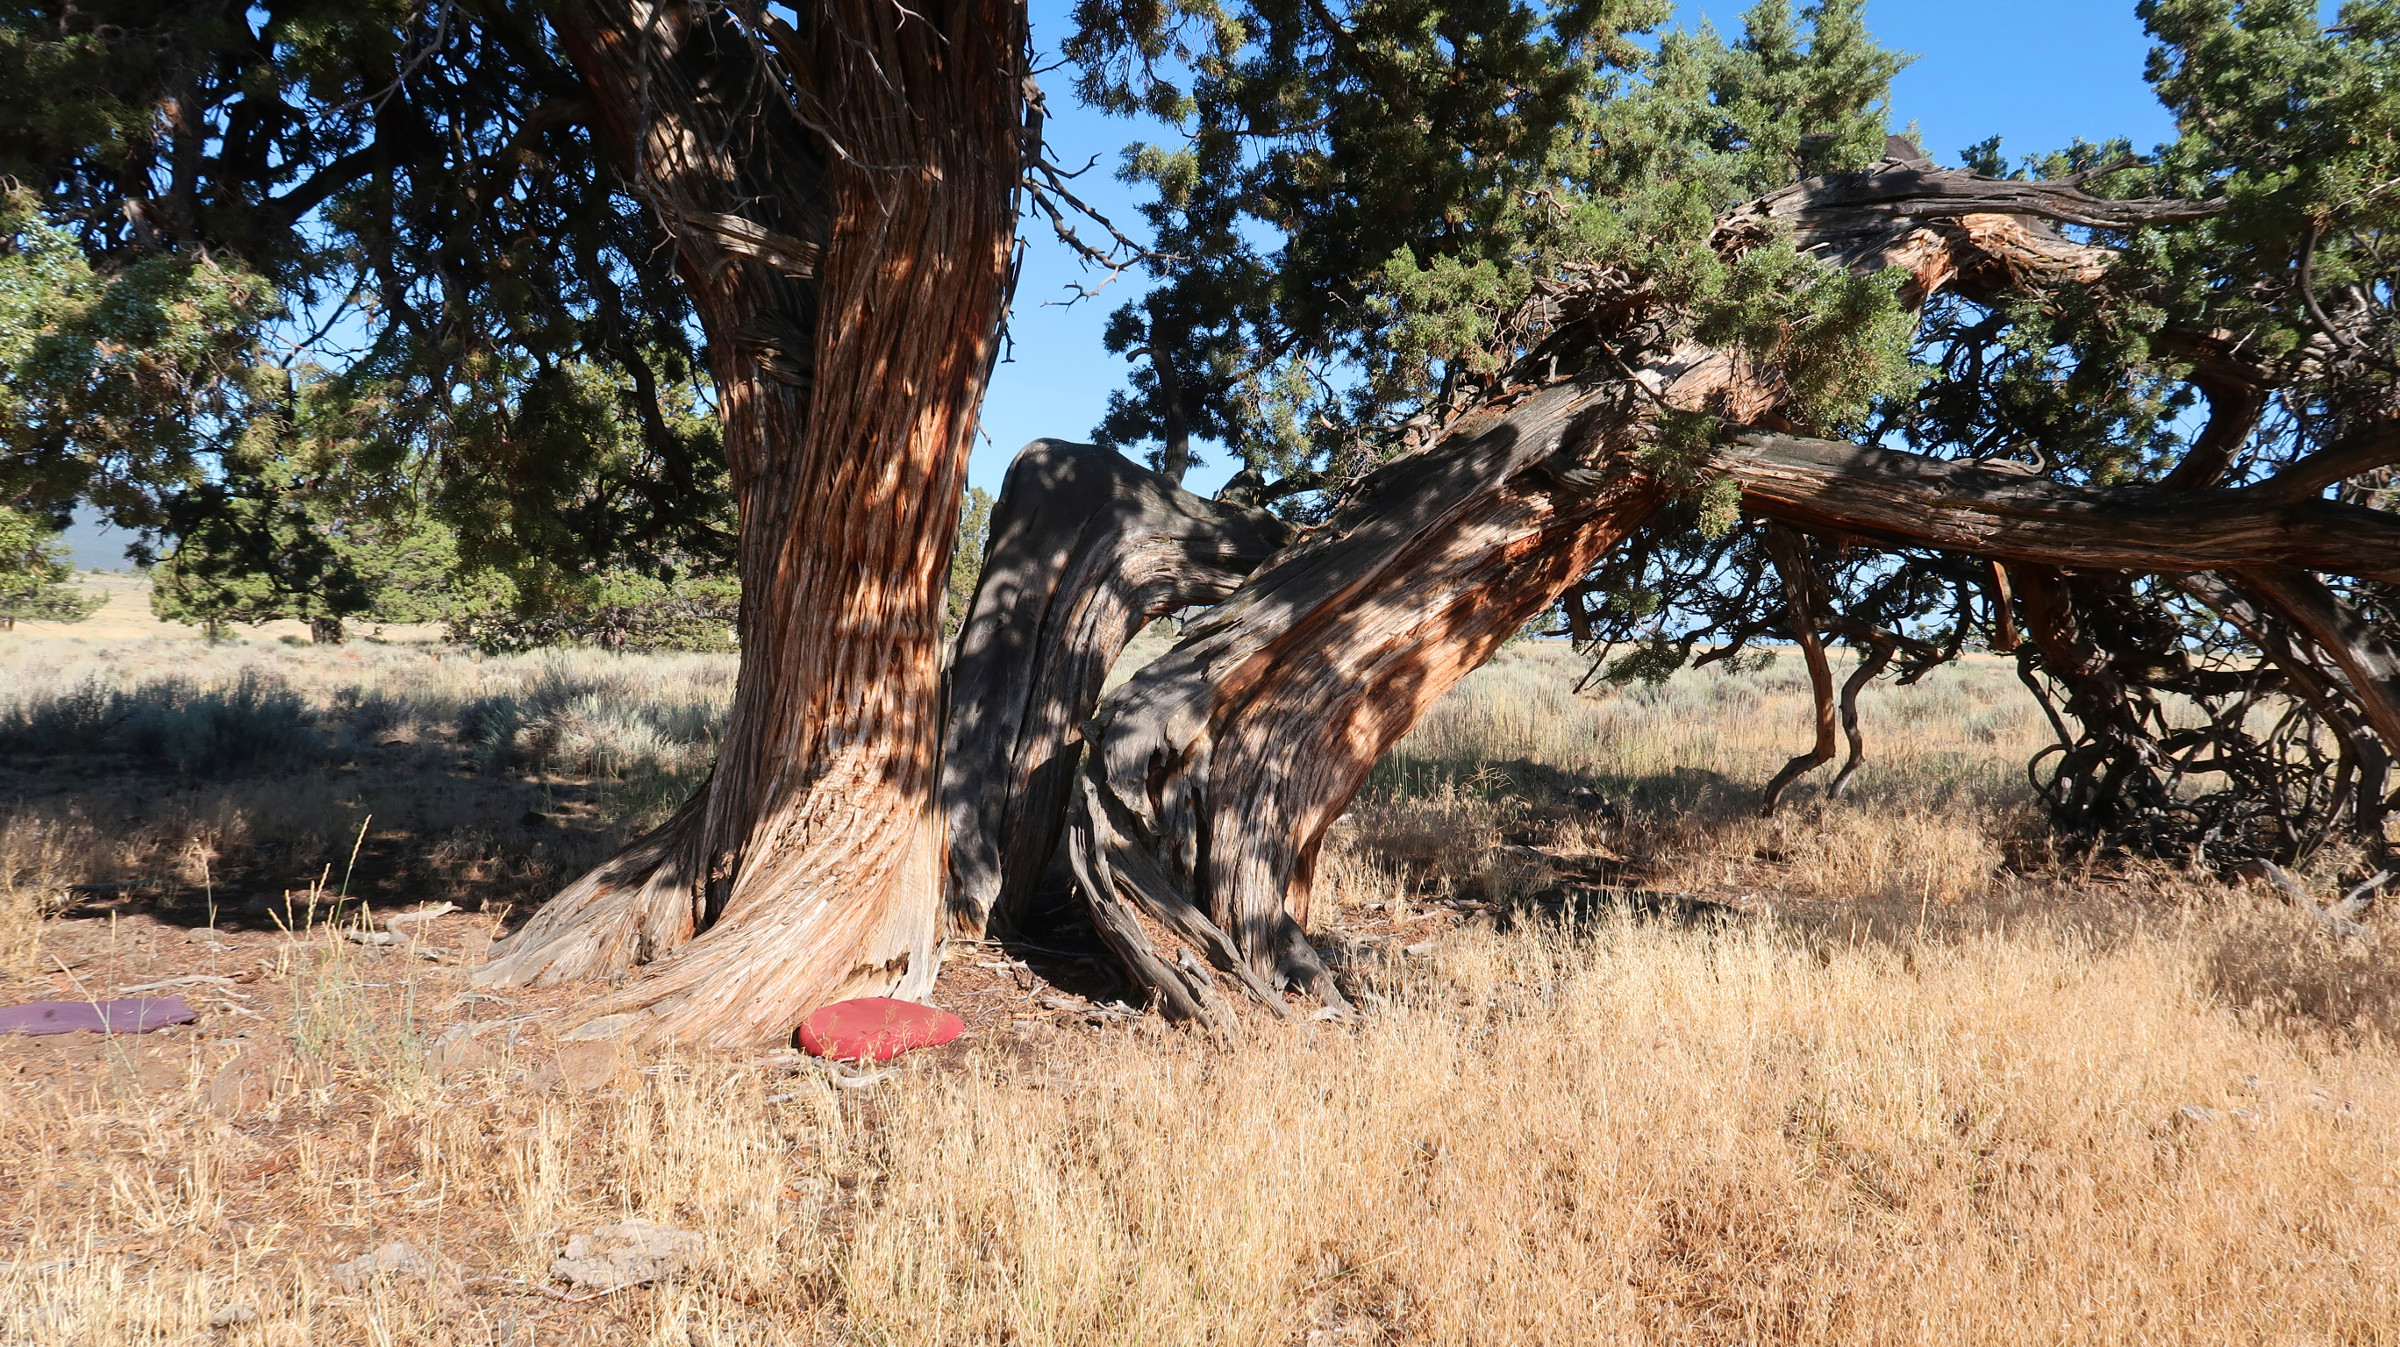 Juniper tree in Klamath County, CA